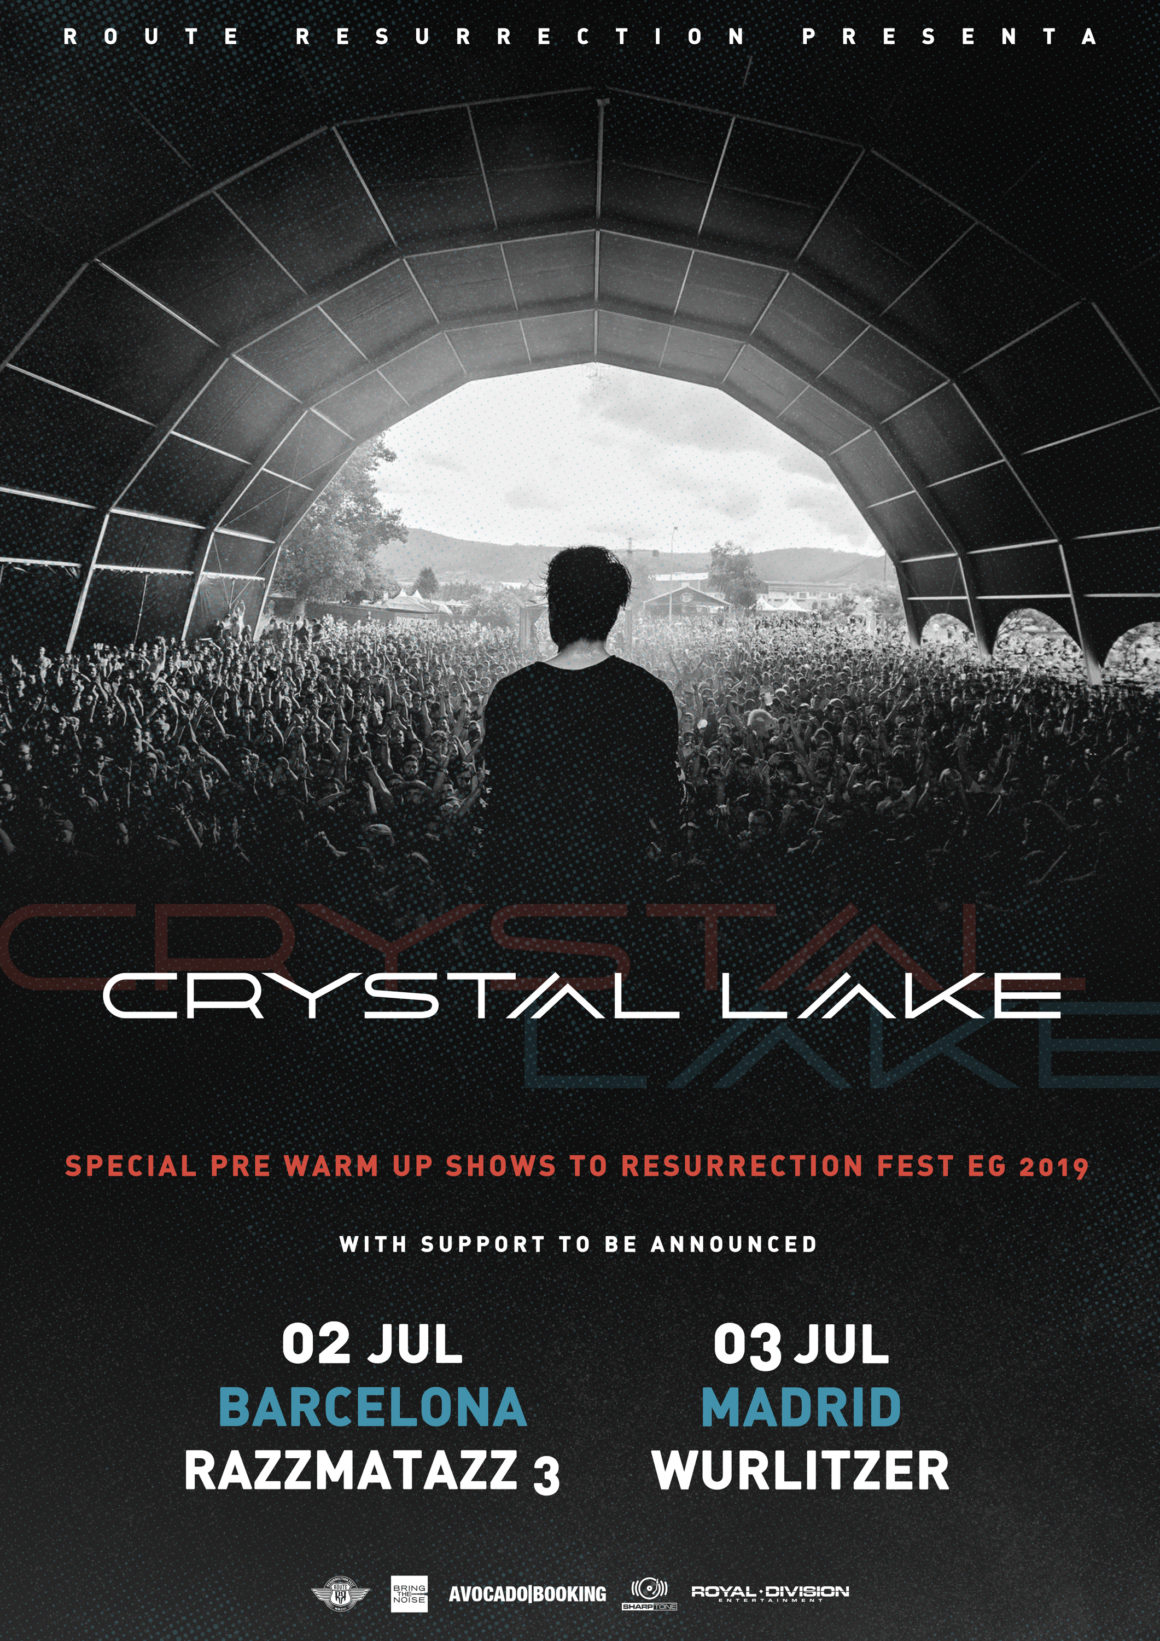 Nueva gira Route Resurrection: Crystal Lake